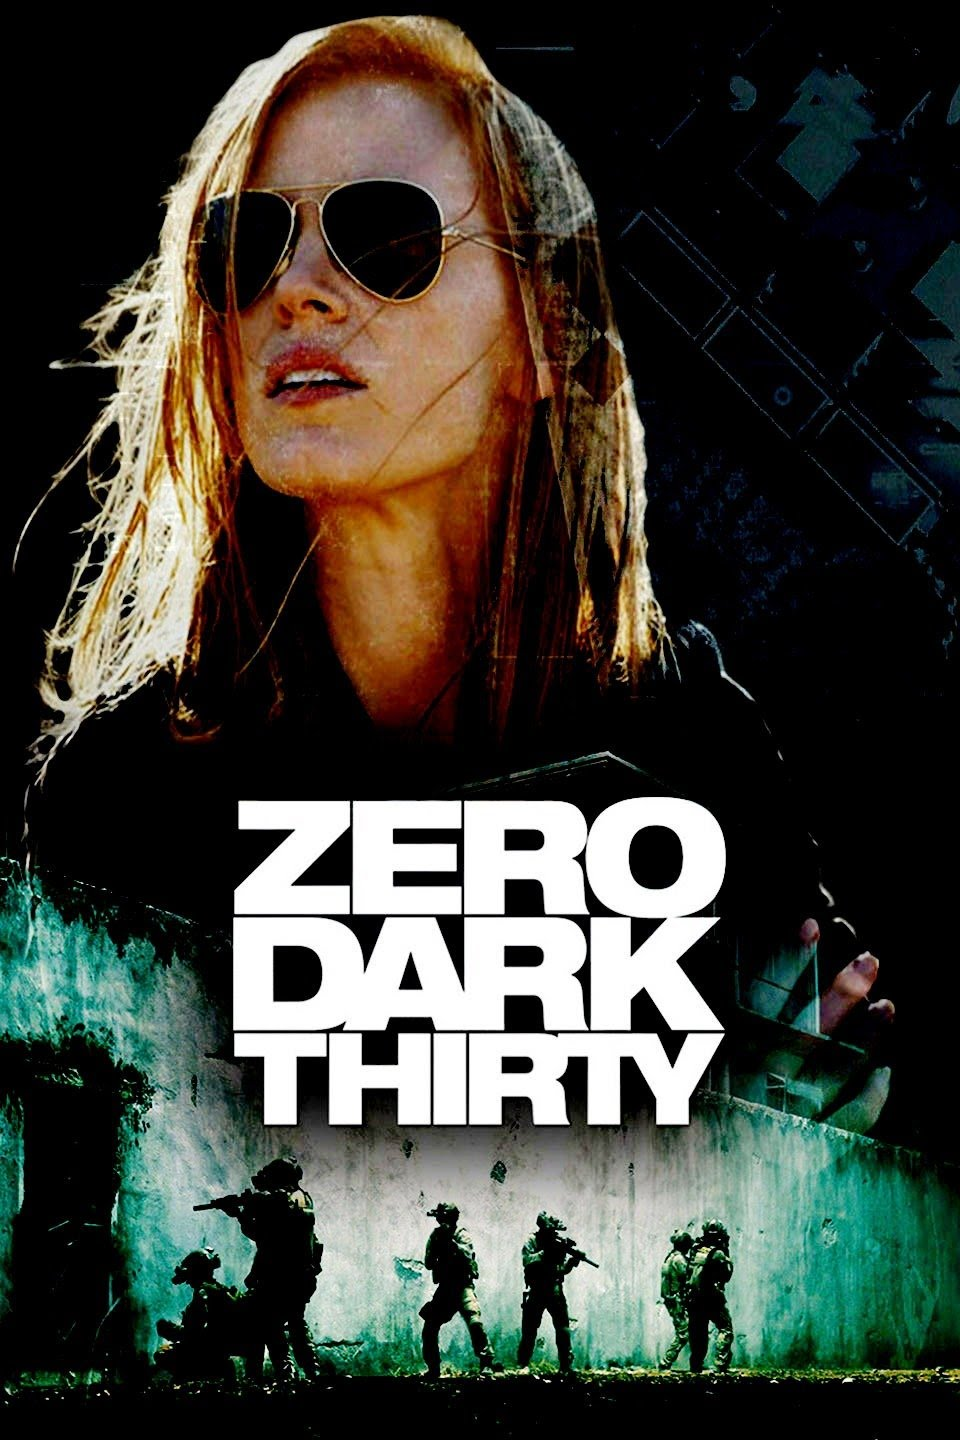 Download Zero Dark Thirty (2012) Full Movie In Hindi-English (Dual Audio) Bluray 480p [600MB] | 720p [1.1GB]